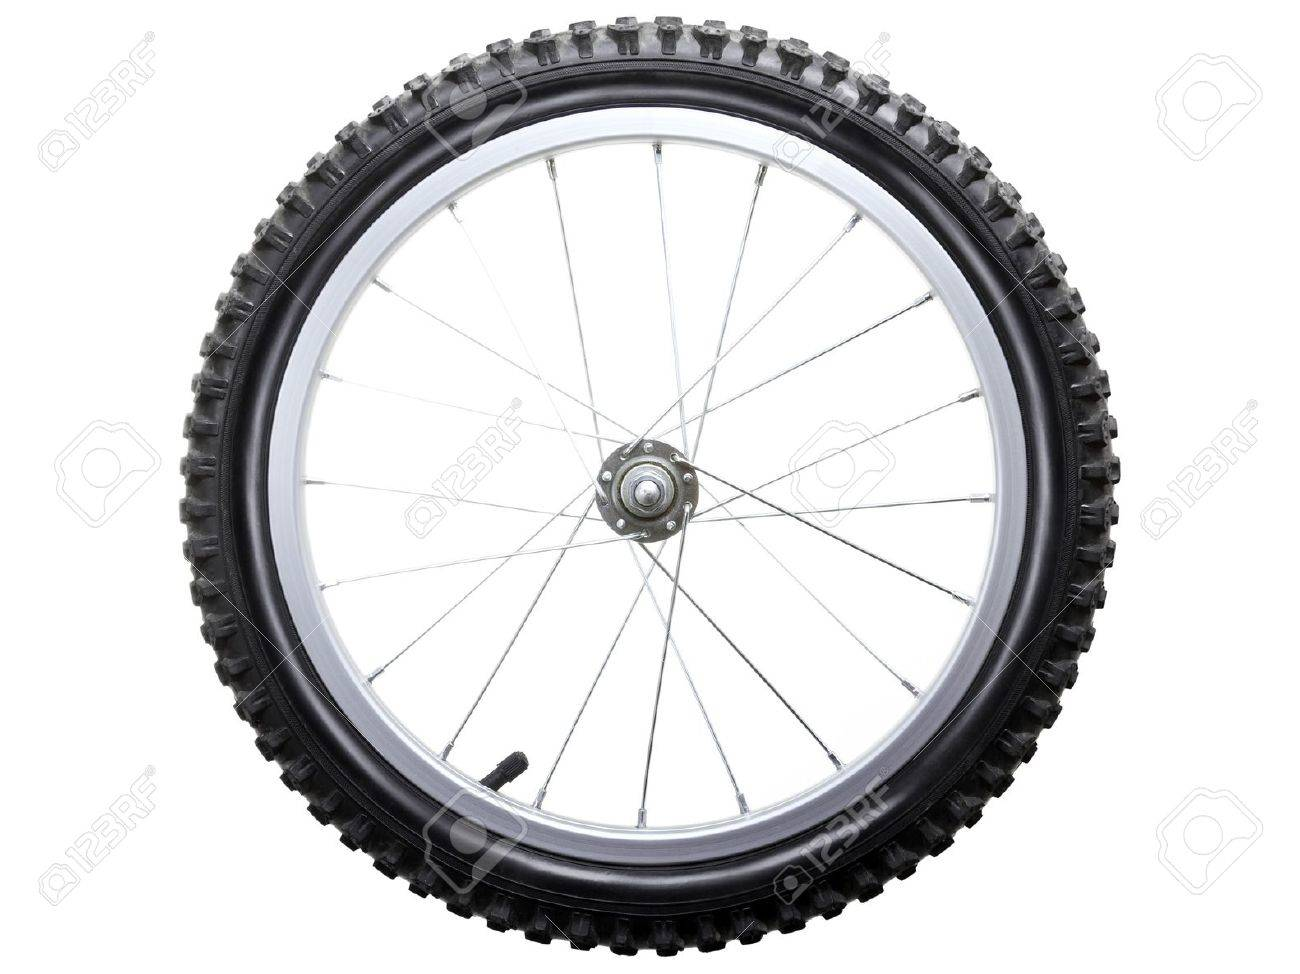 Sport bicycle tire and spoke wheel while isolated Stock Photo - 8122765